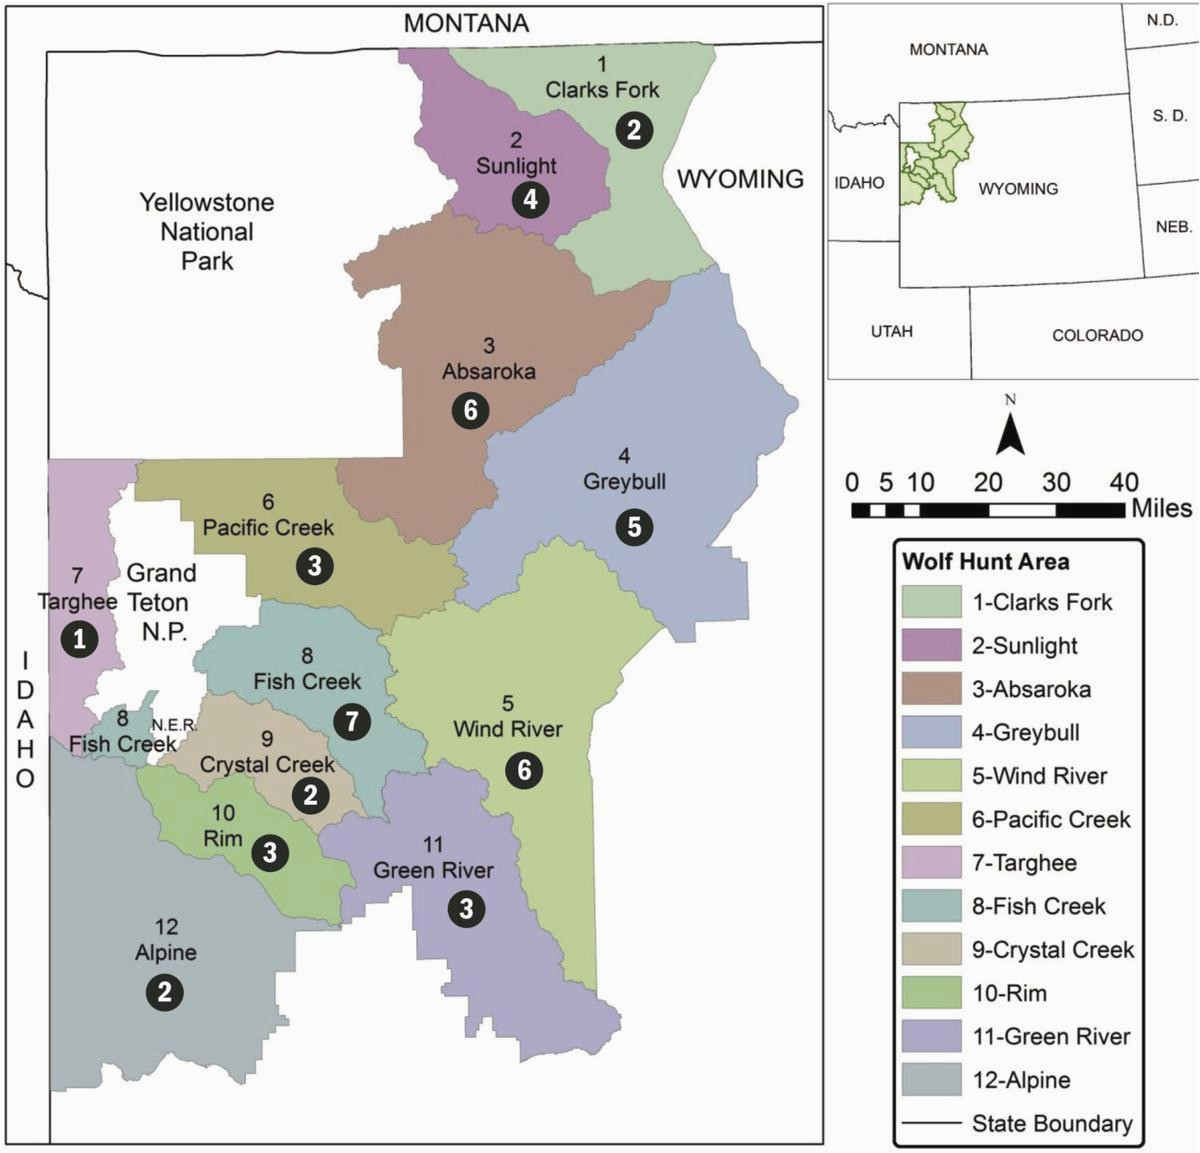 Wolves In Minnesota Map Wyoming Sets Wolf Population Goal Of 160 Environmental